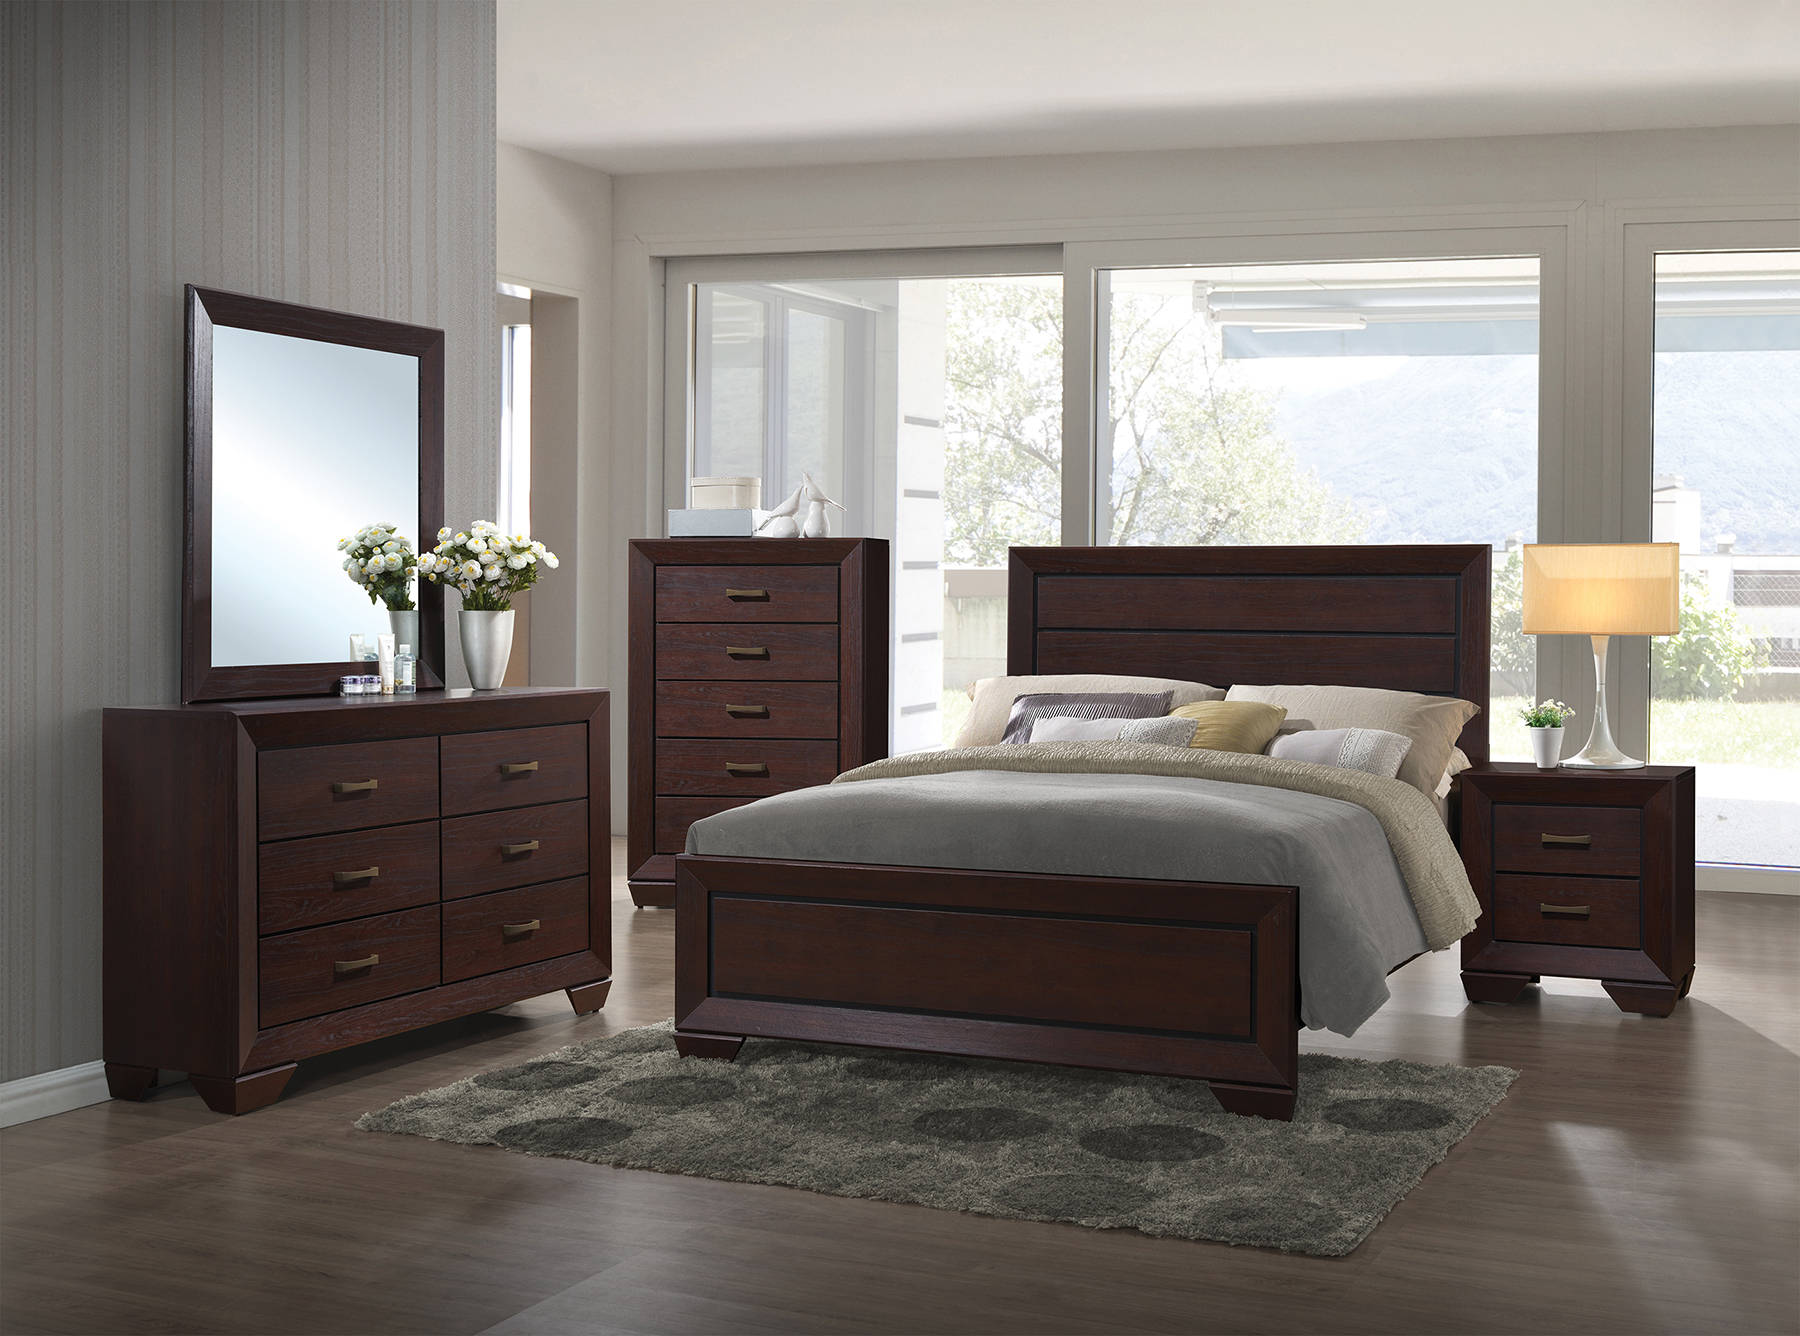 Fenbrook transitional dark cocoa hardwood master bedroom set bedrooms the classy home best No dresser in master bedroom